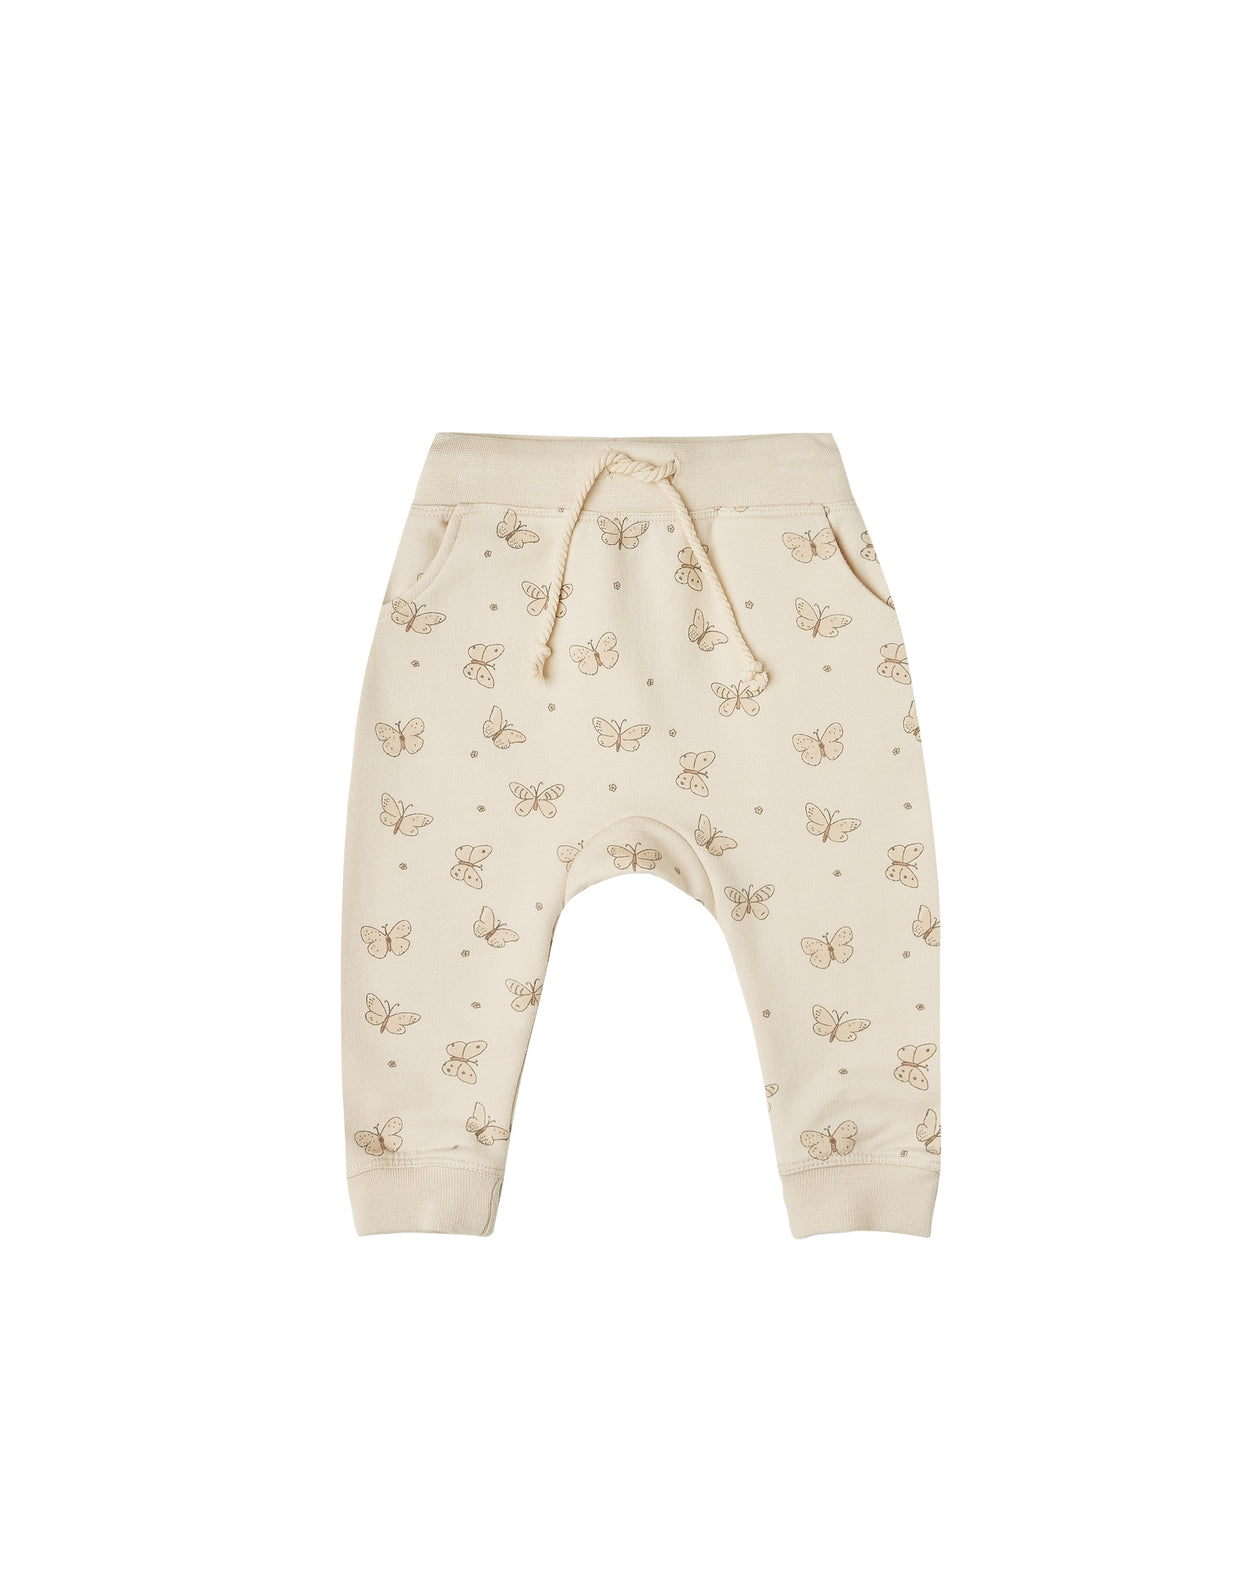 The Rylee & Cru Butterfly Terry Sweatpant Natural